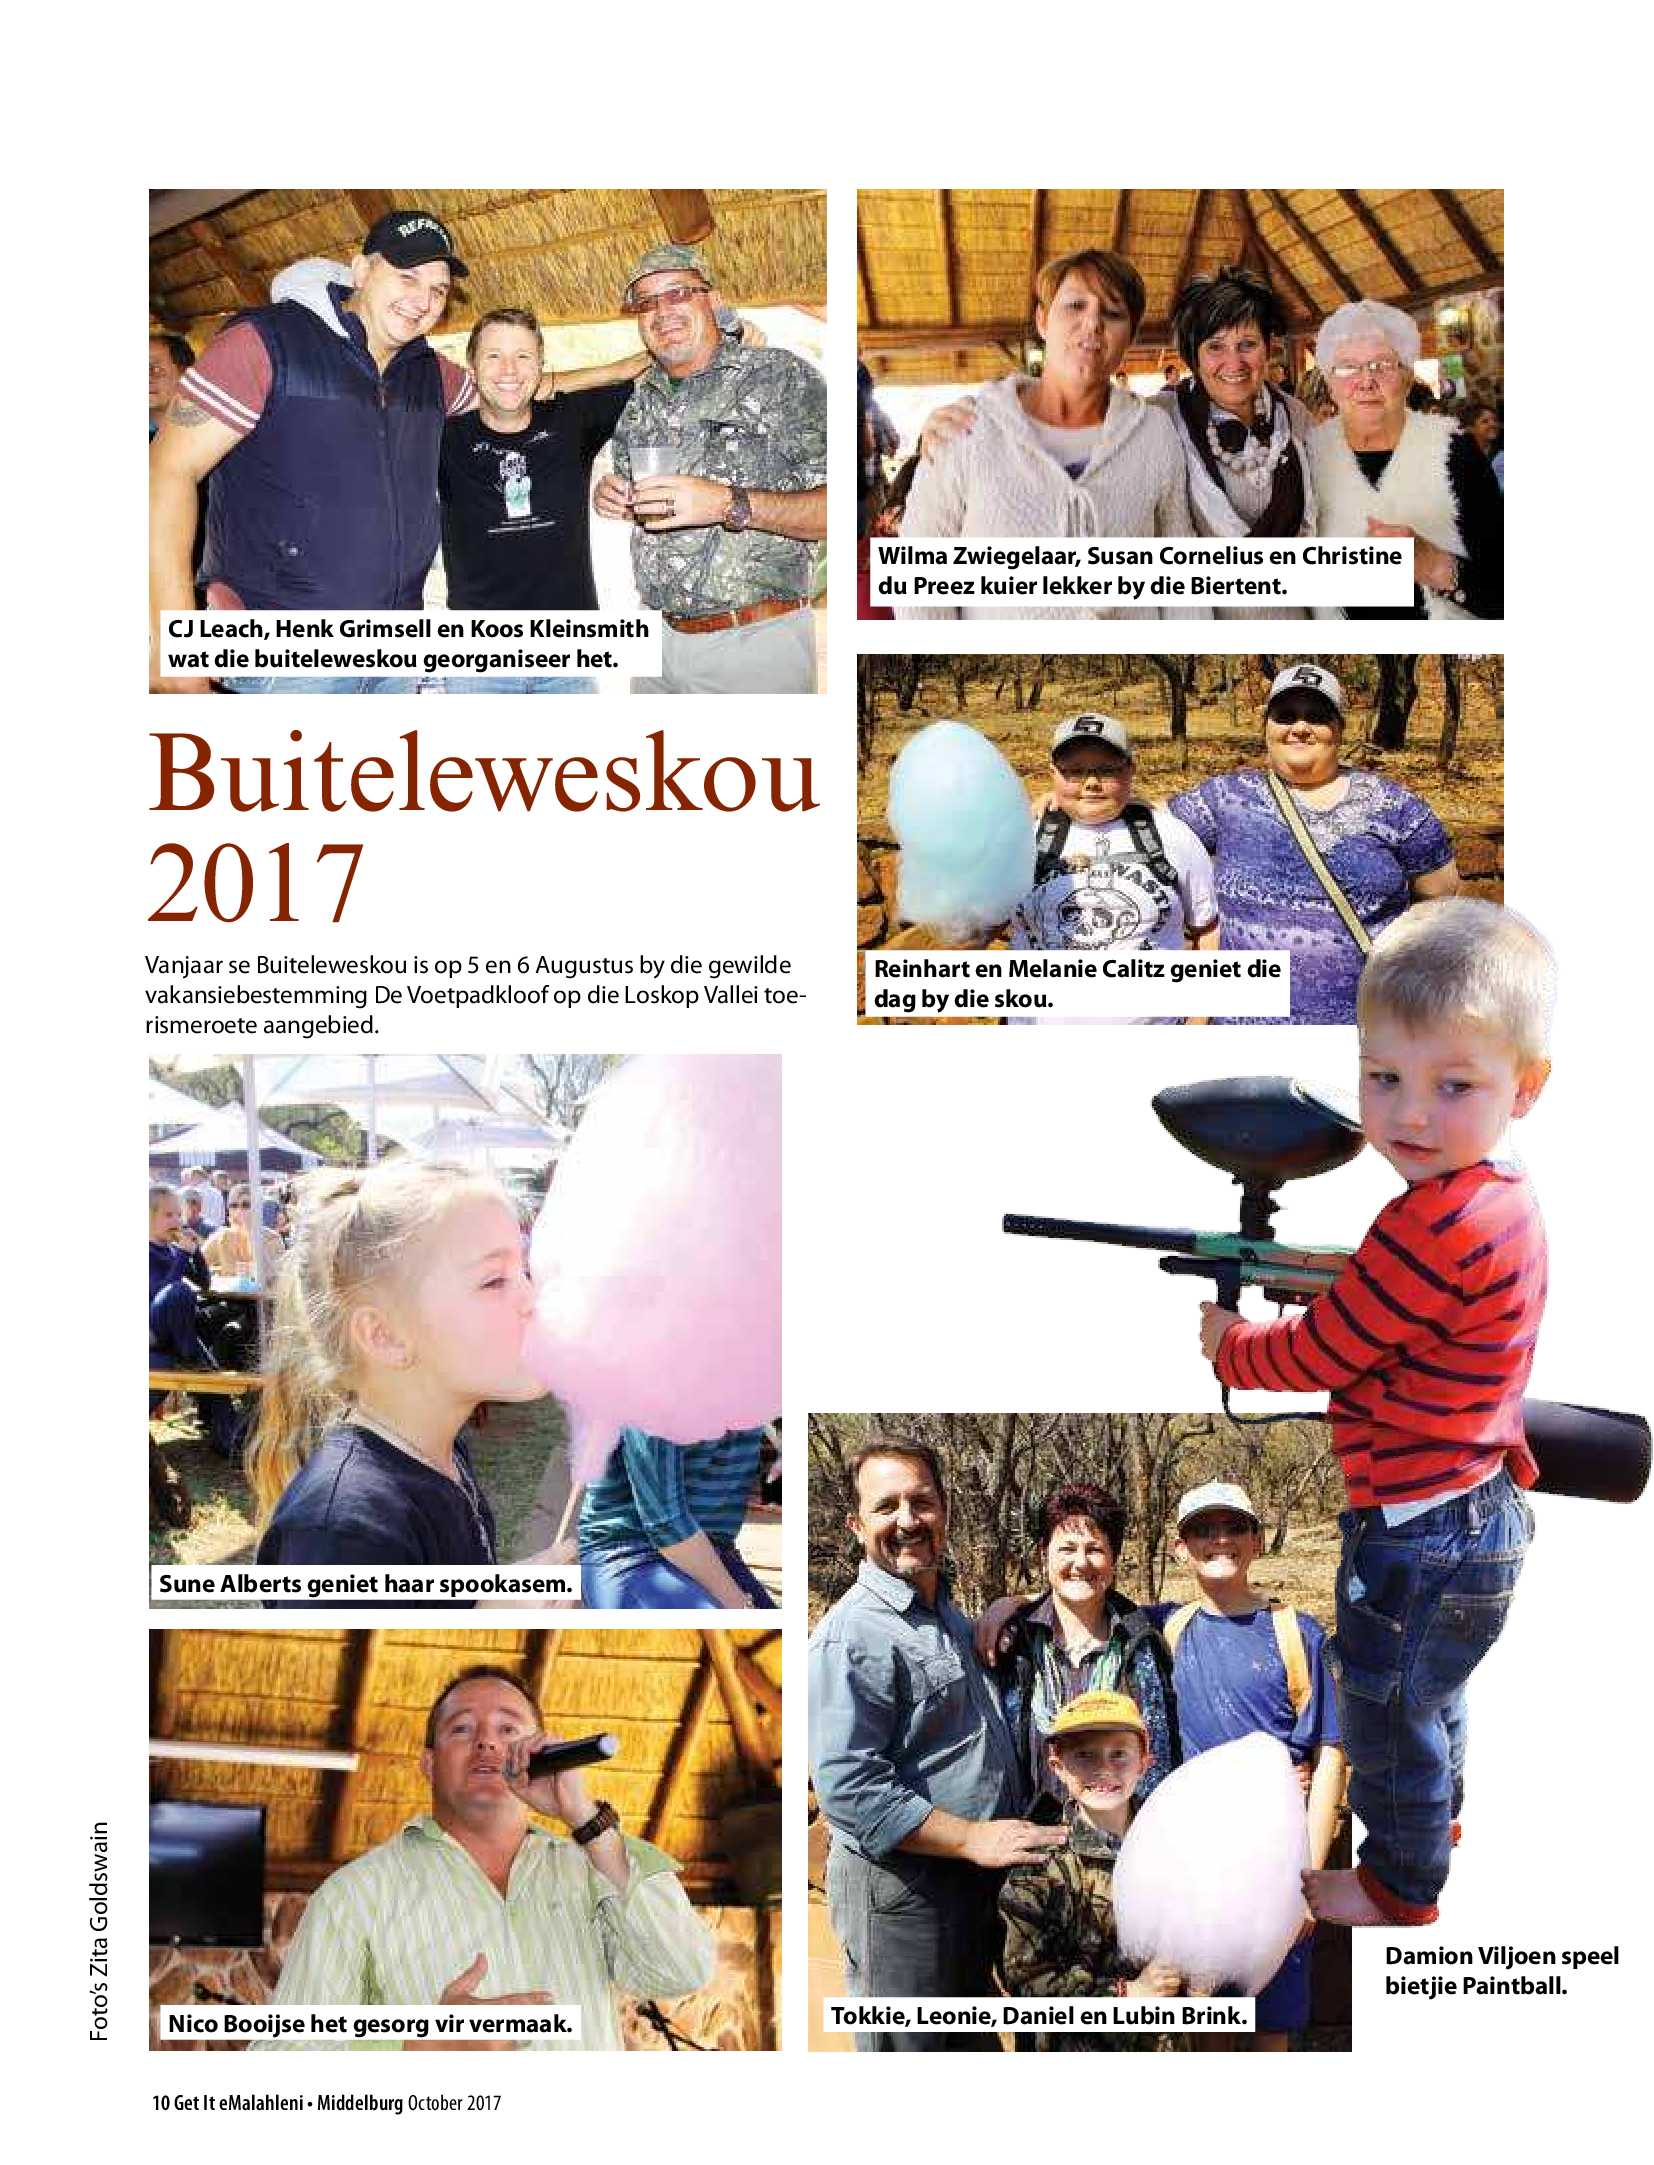 get-middelburg-october-17-epapers-page-12